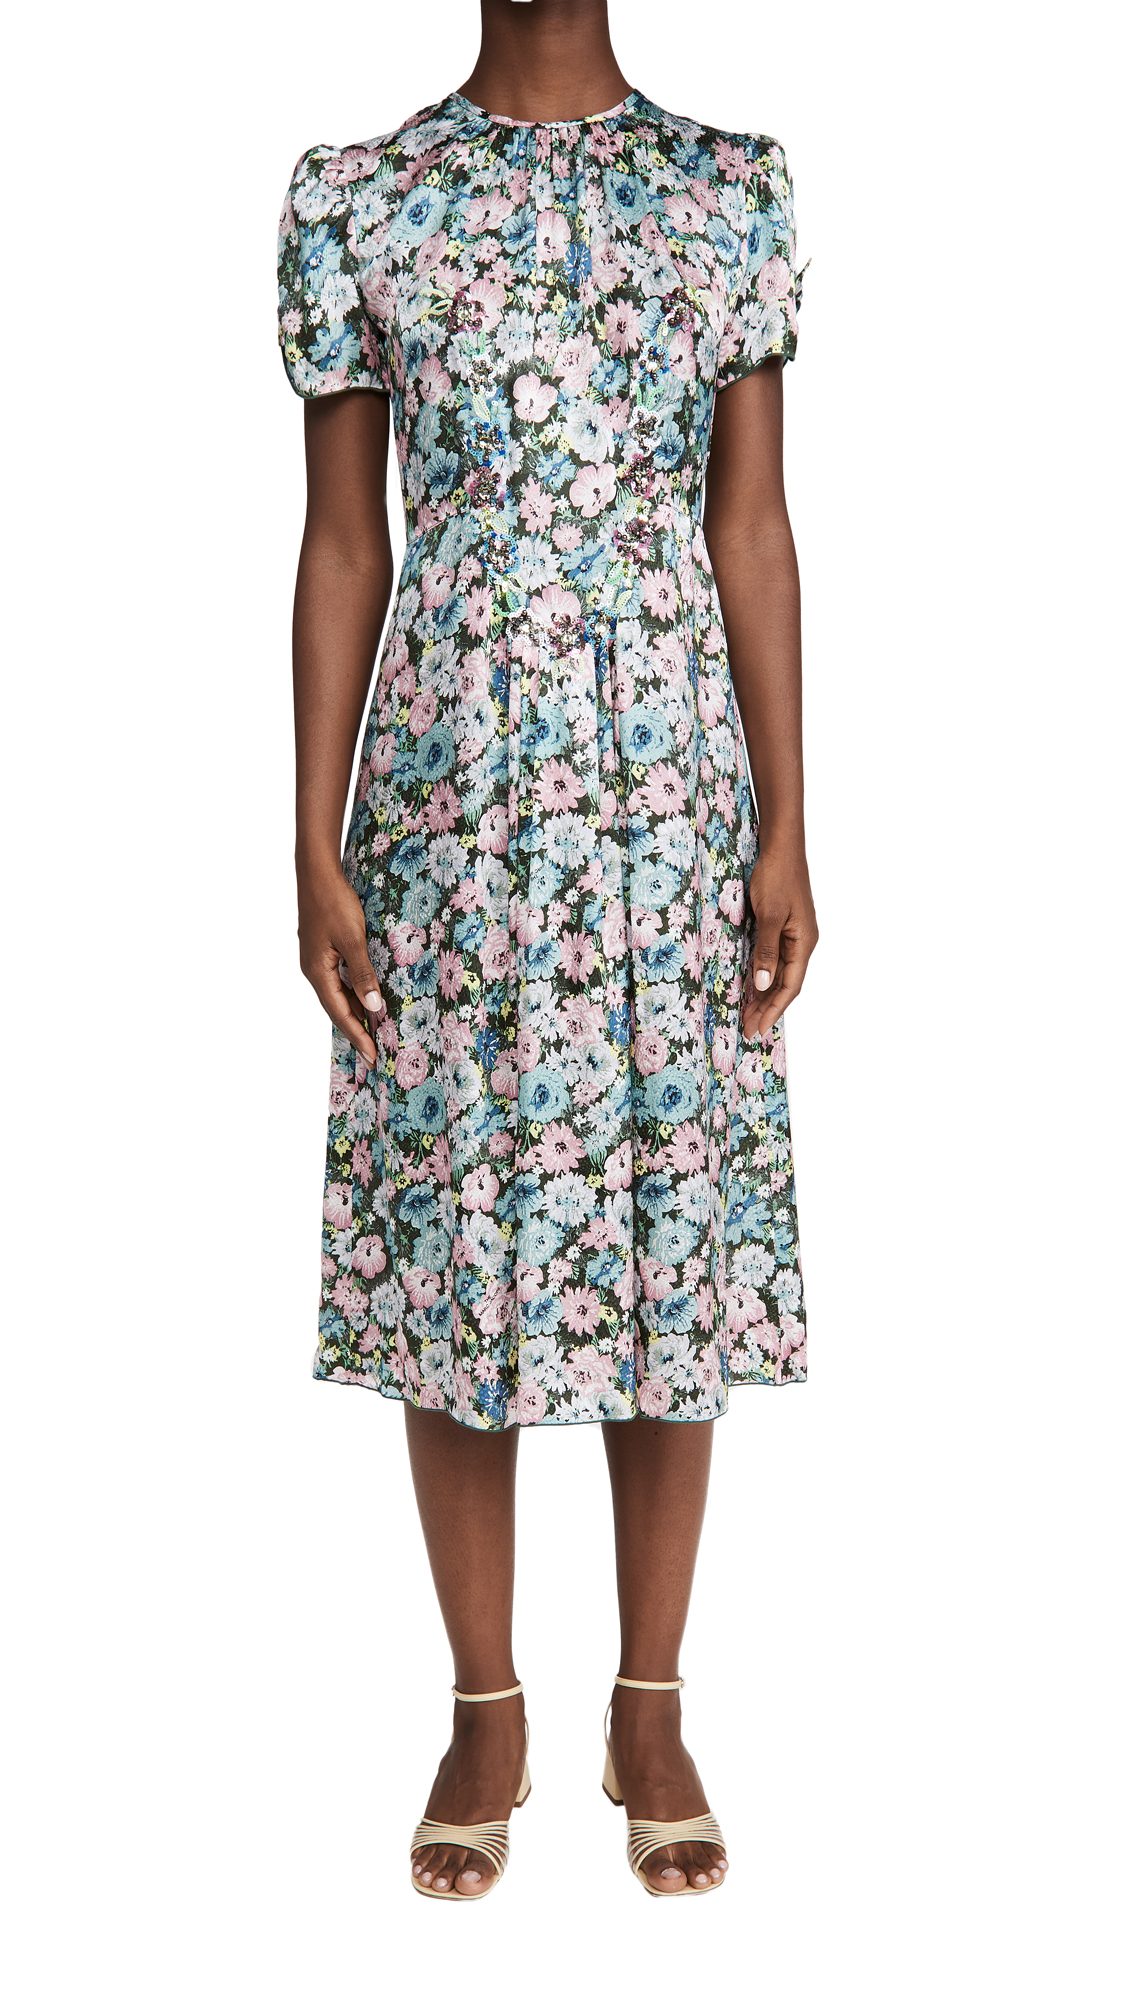 The Marc Jacobs The '40s Dress